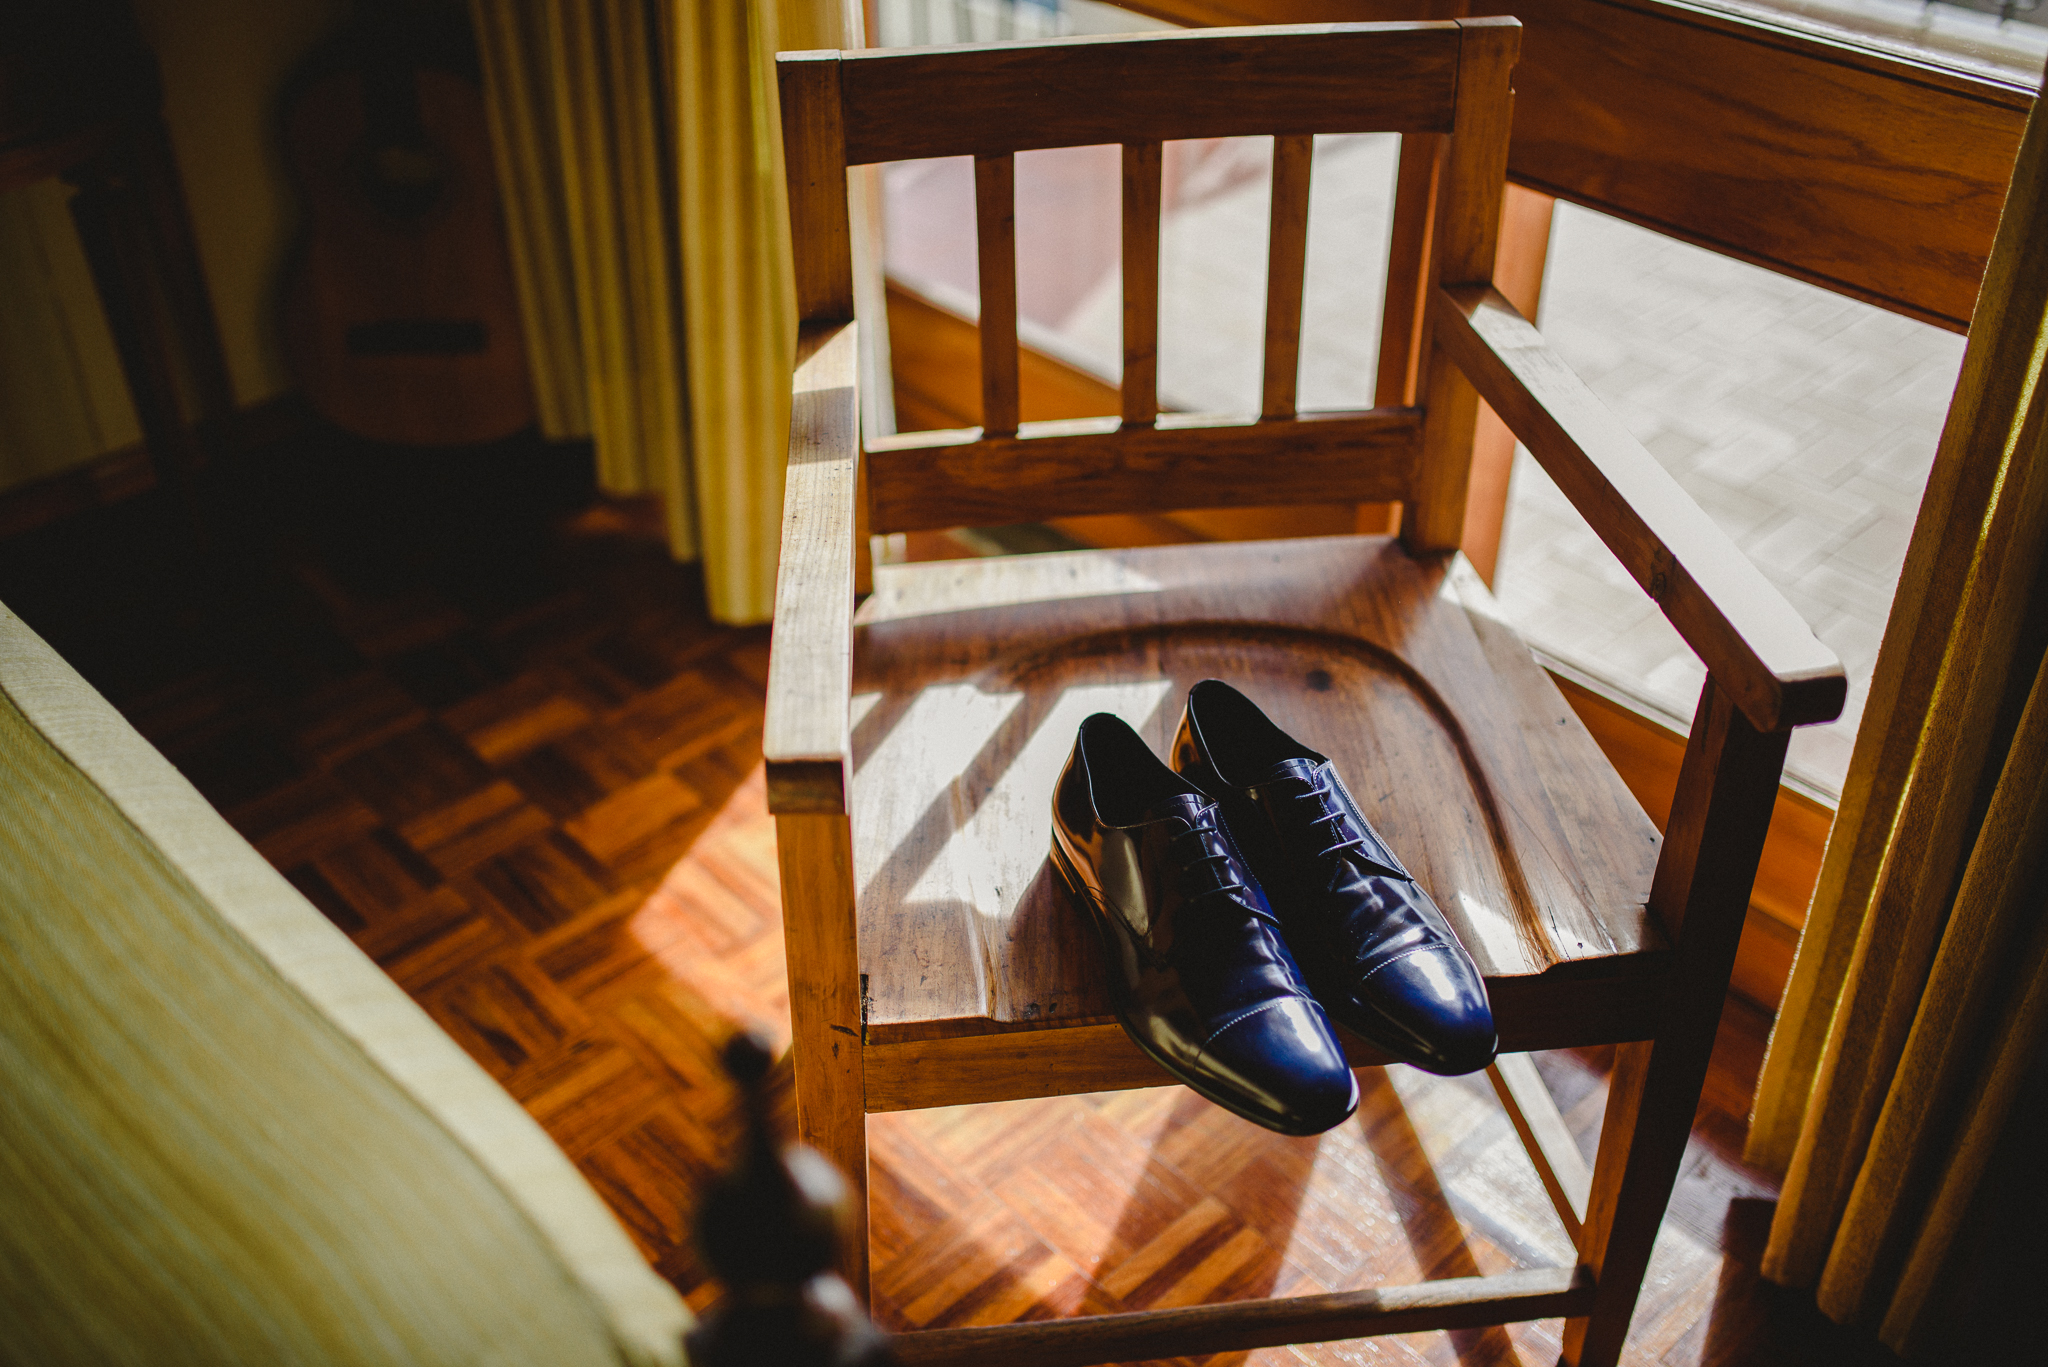 Groom's shoes on a chair while he gets ready.